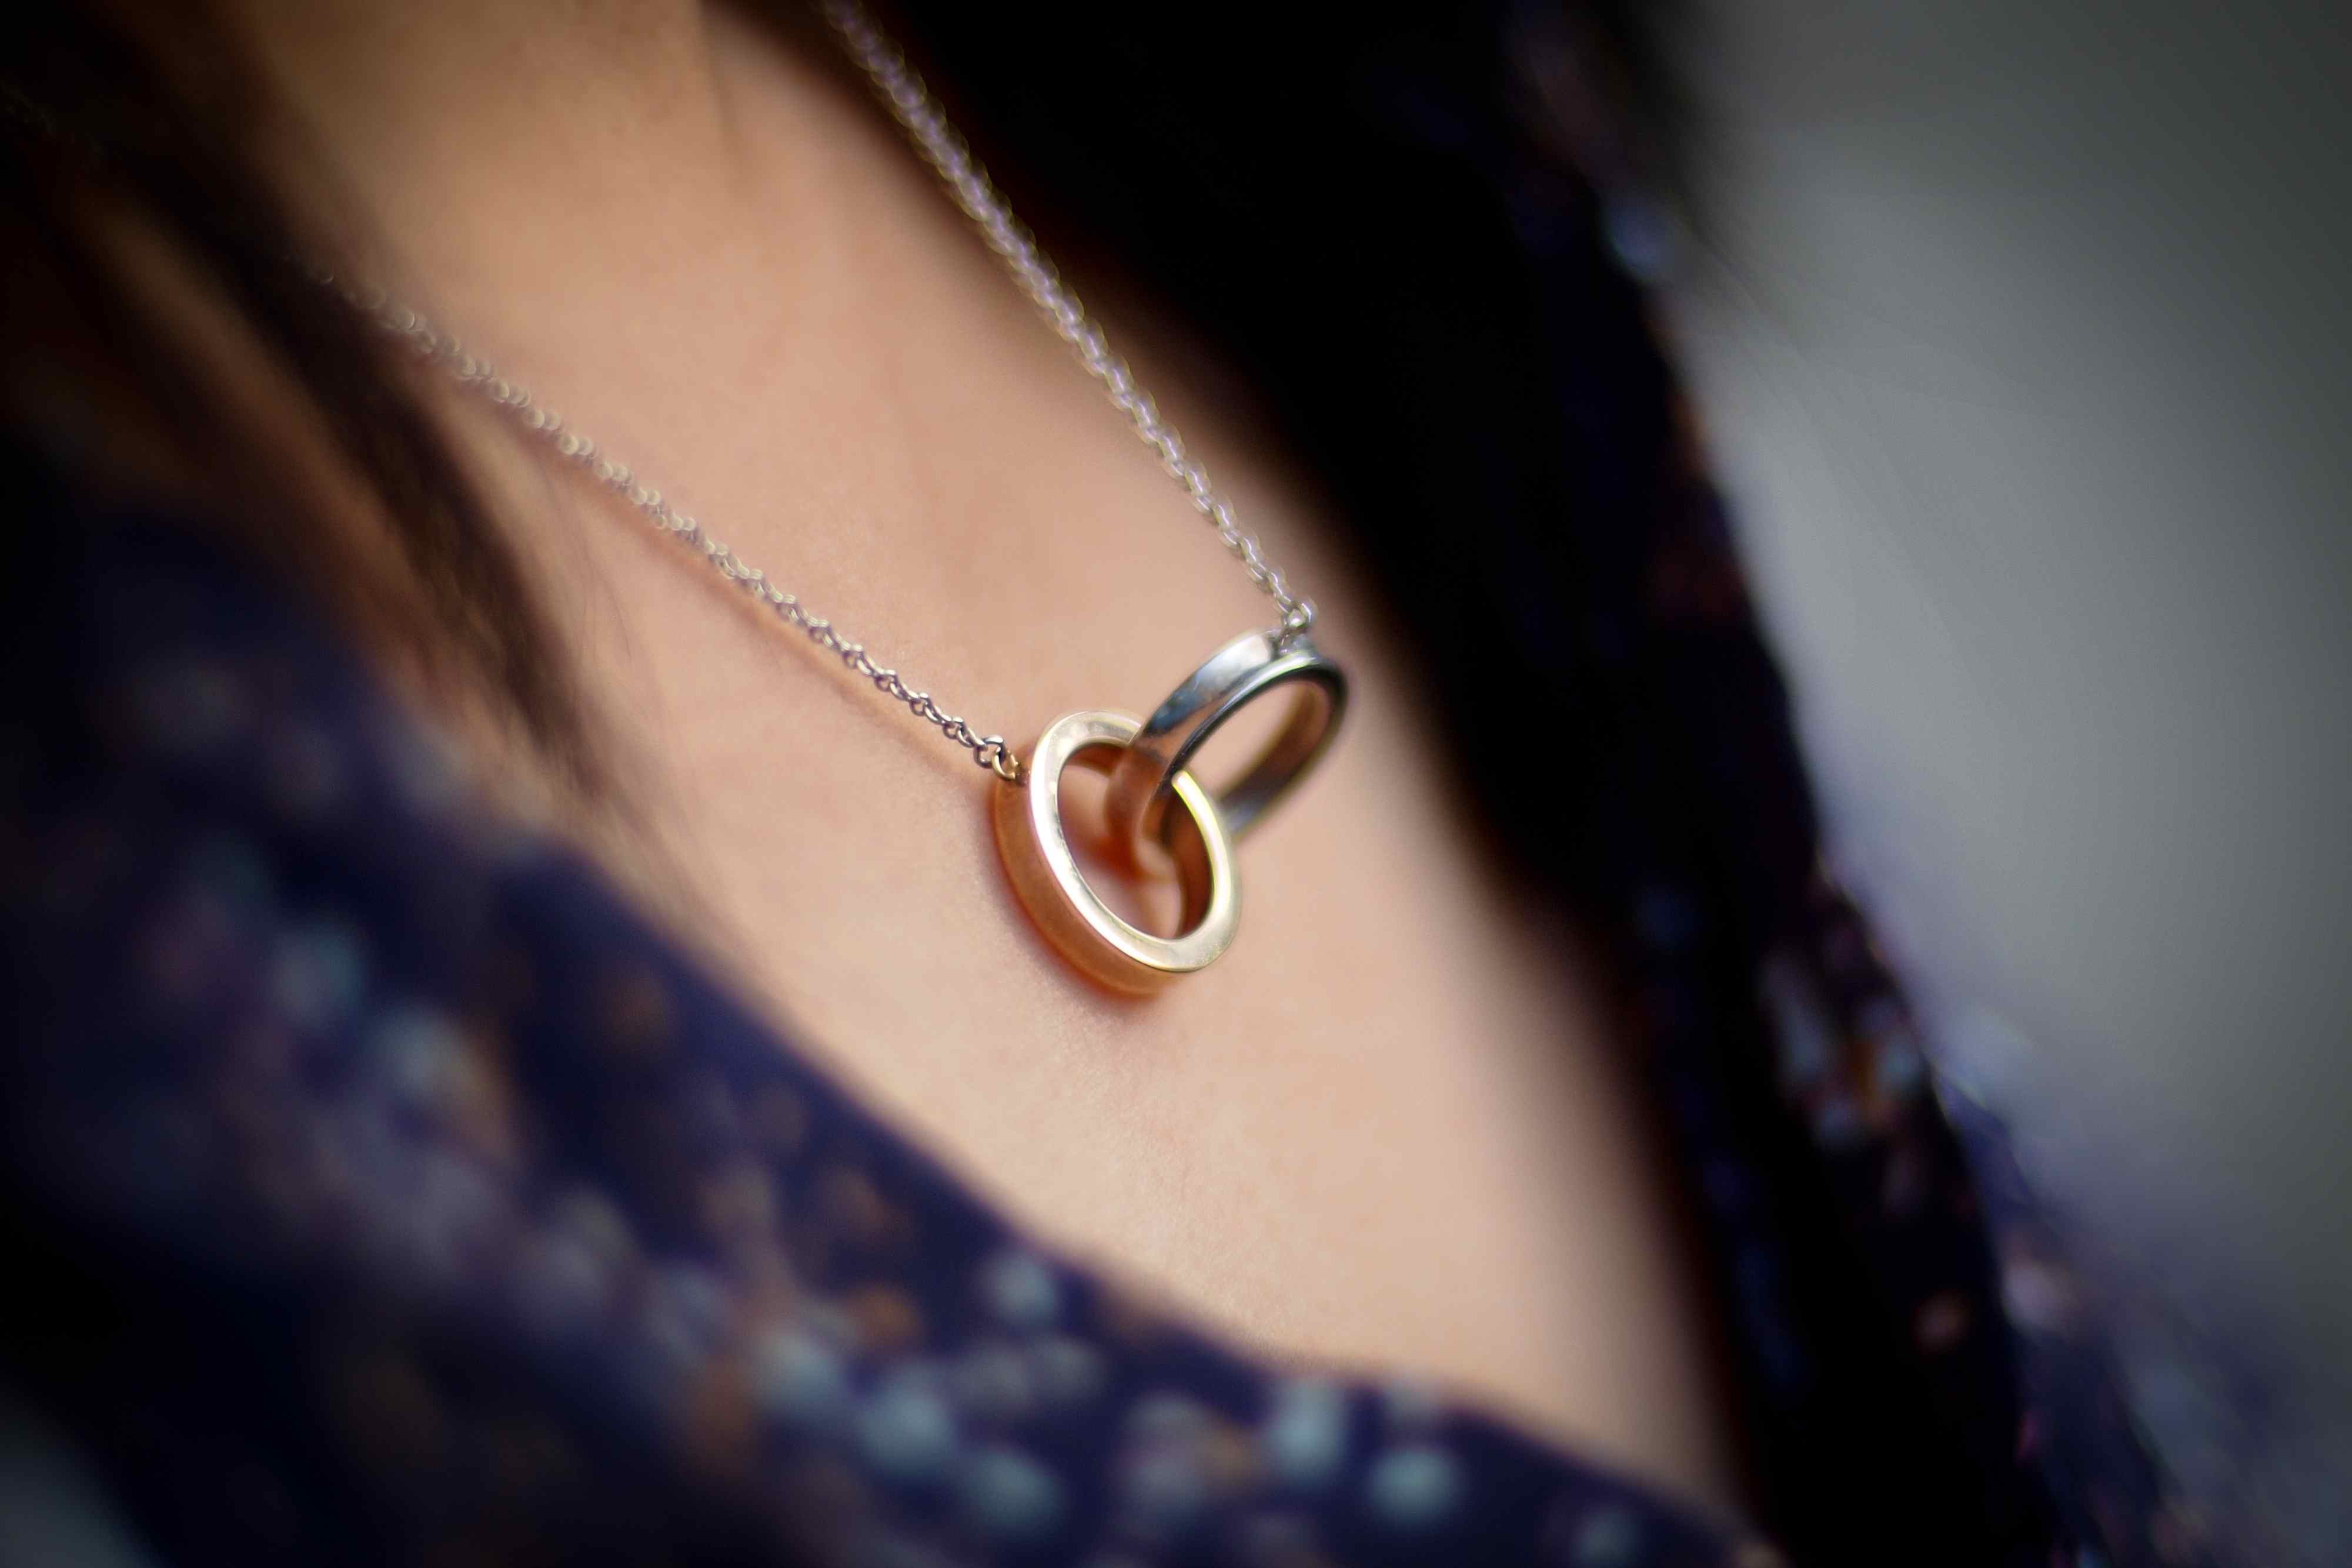 Necklace with two interlocking rings